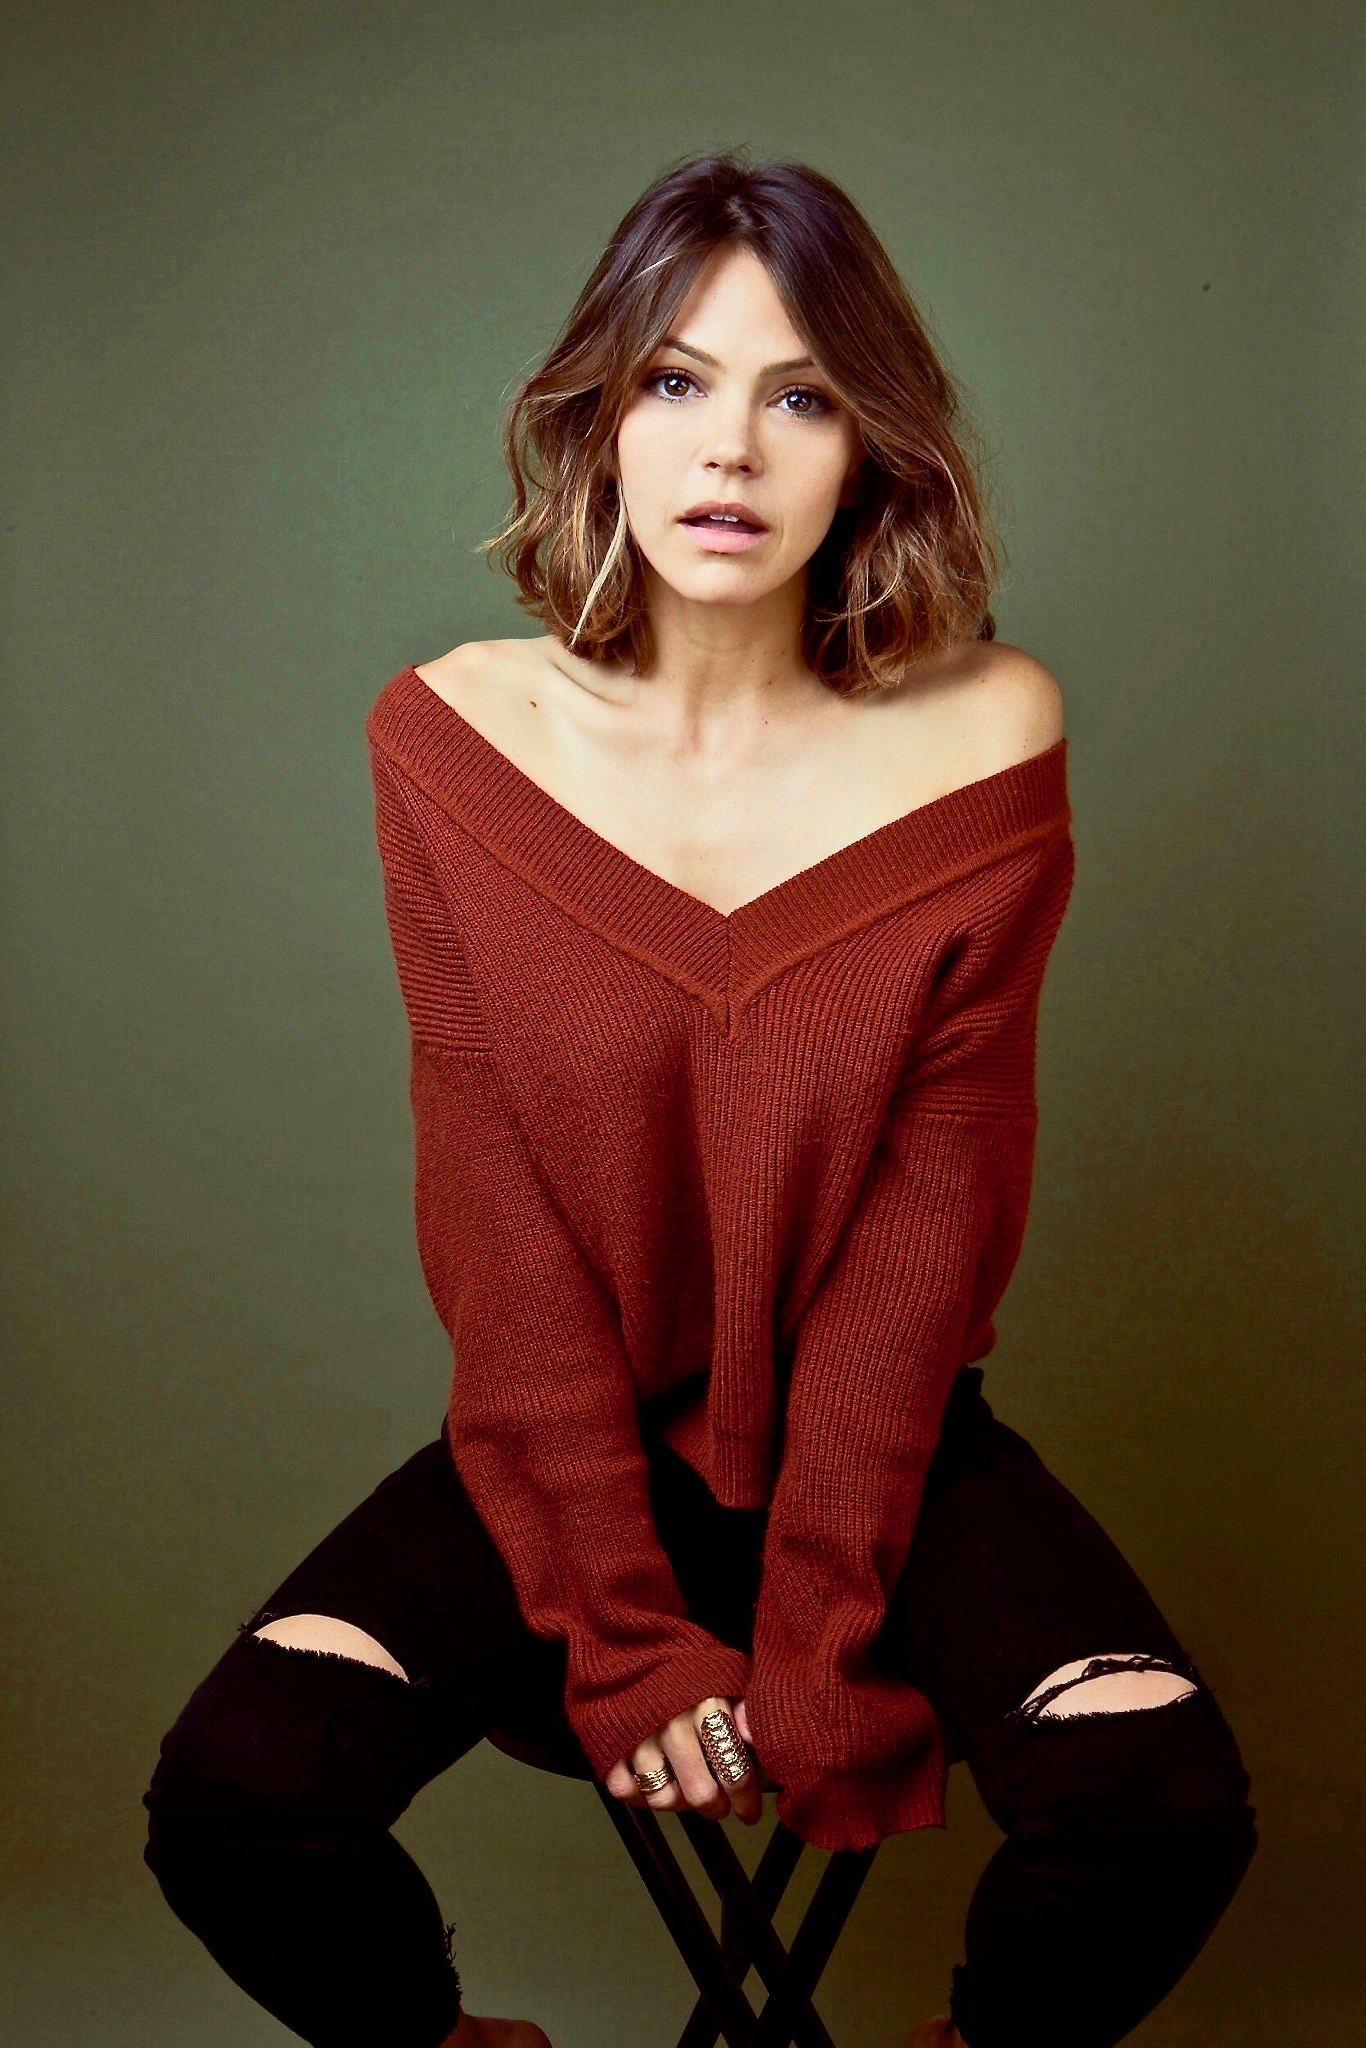 Aimee Teegarden body